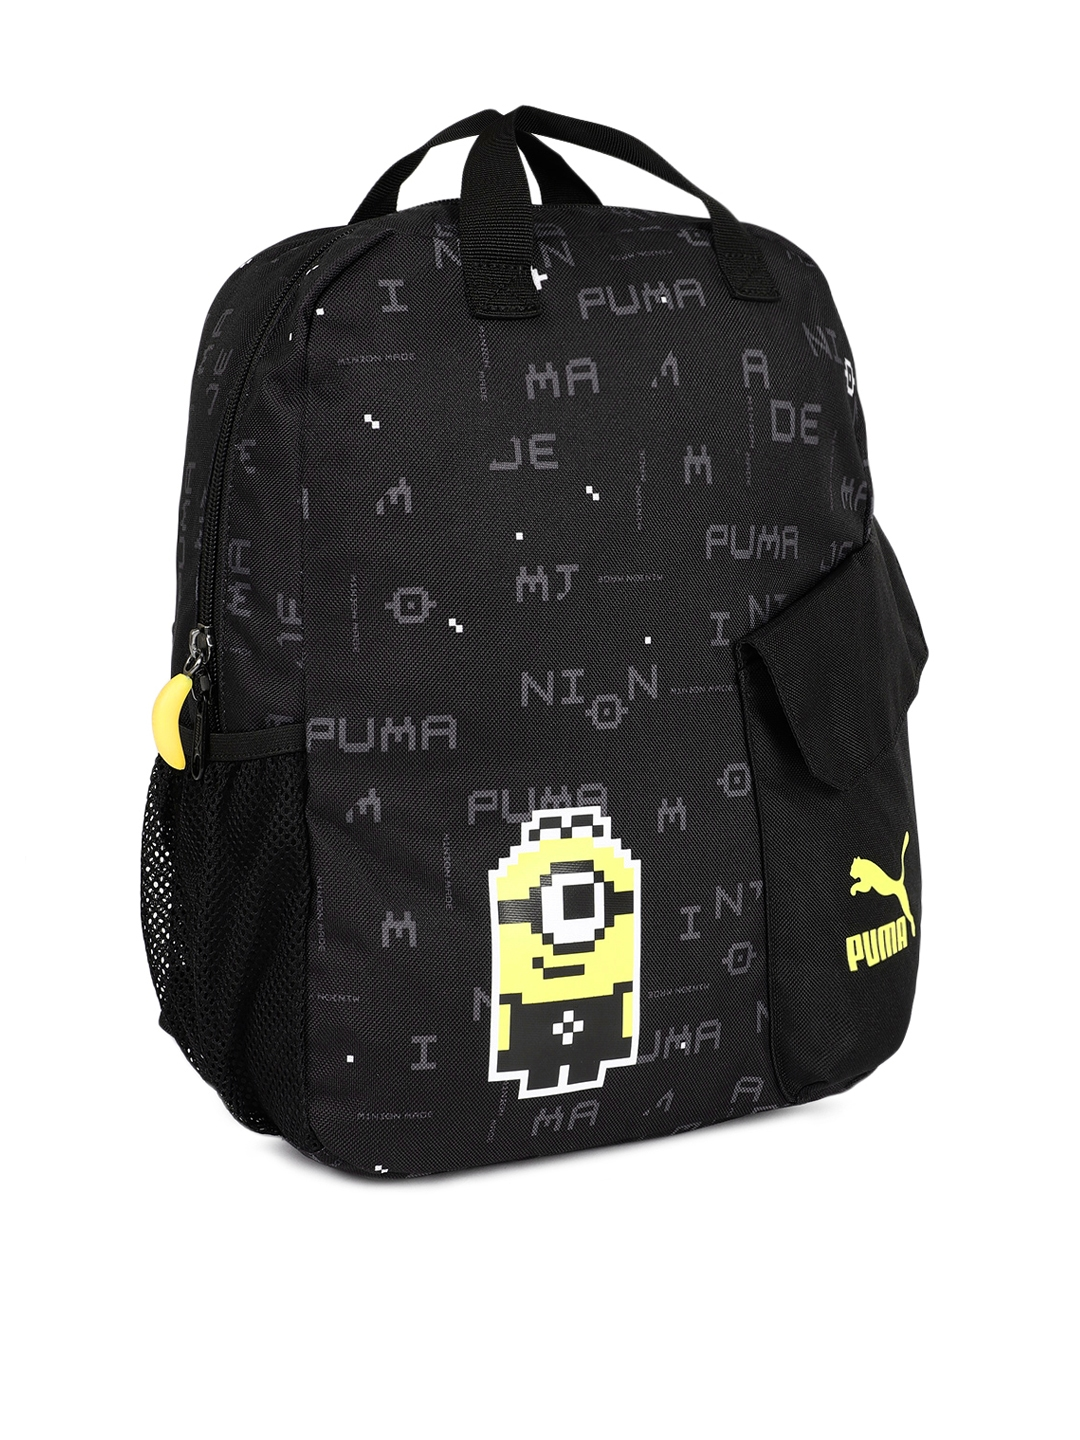 Buy Puma Unisex Black Graphic Print Backpack - Backpacks for Unisex ... 60c7bb8089bd8